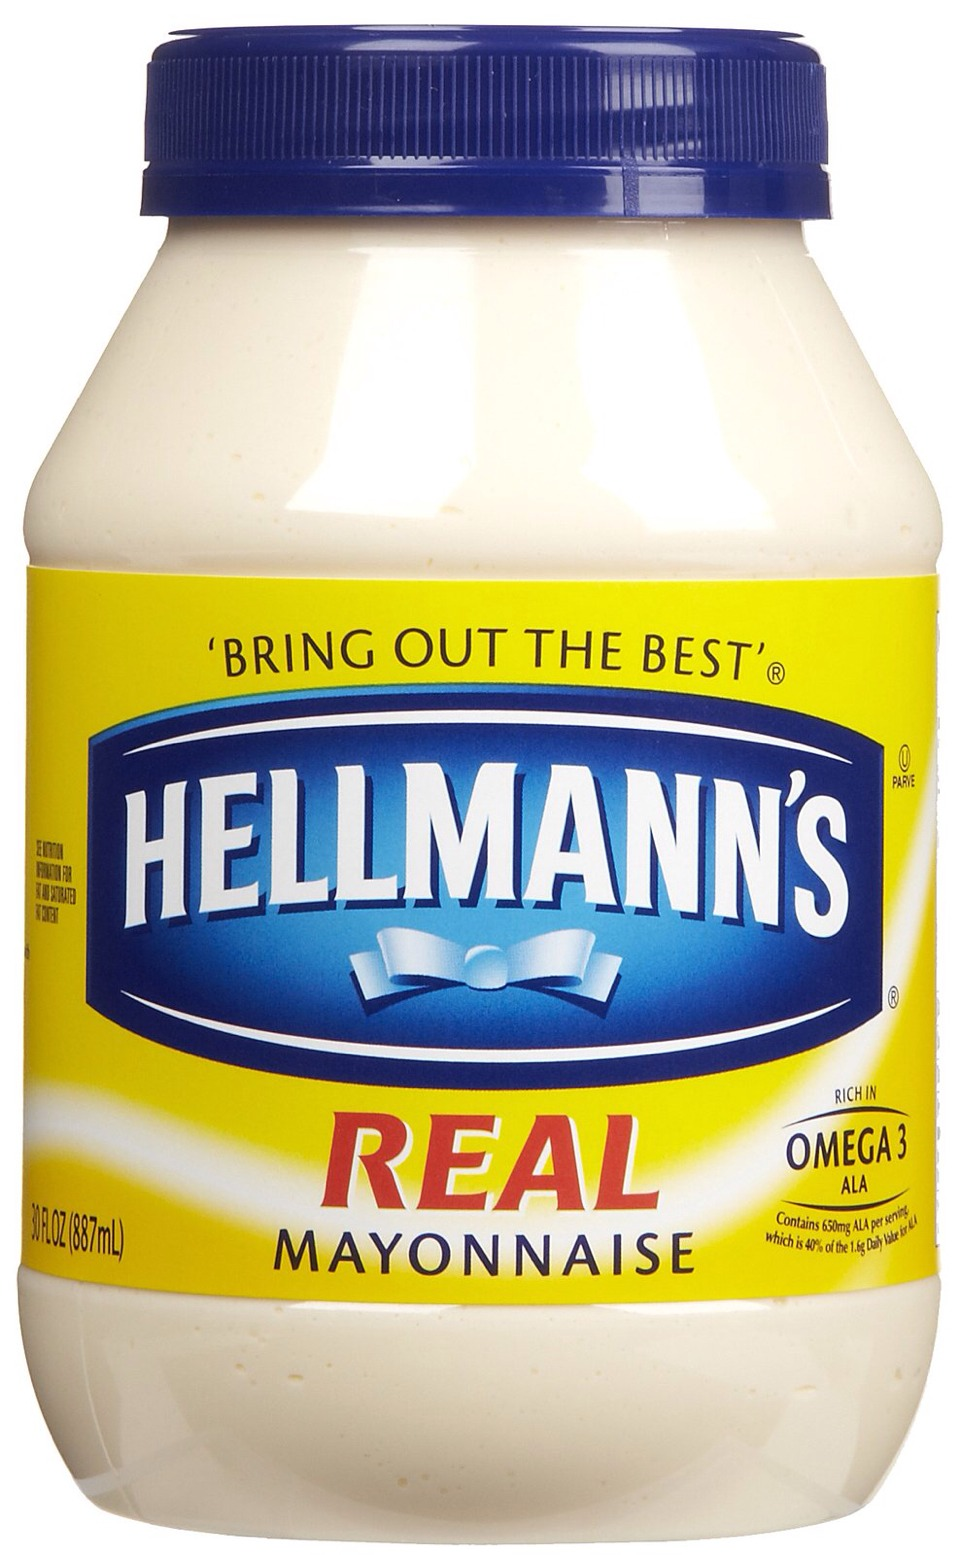 Mayonnaise: apply to gum area and rinse.